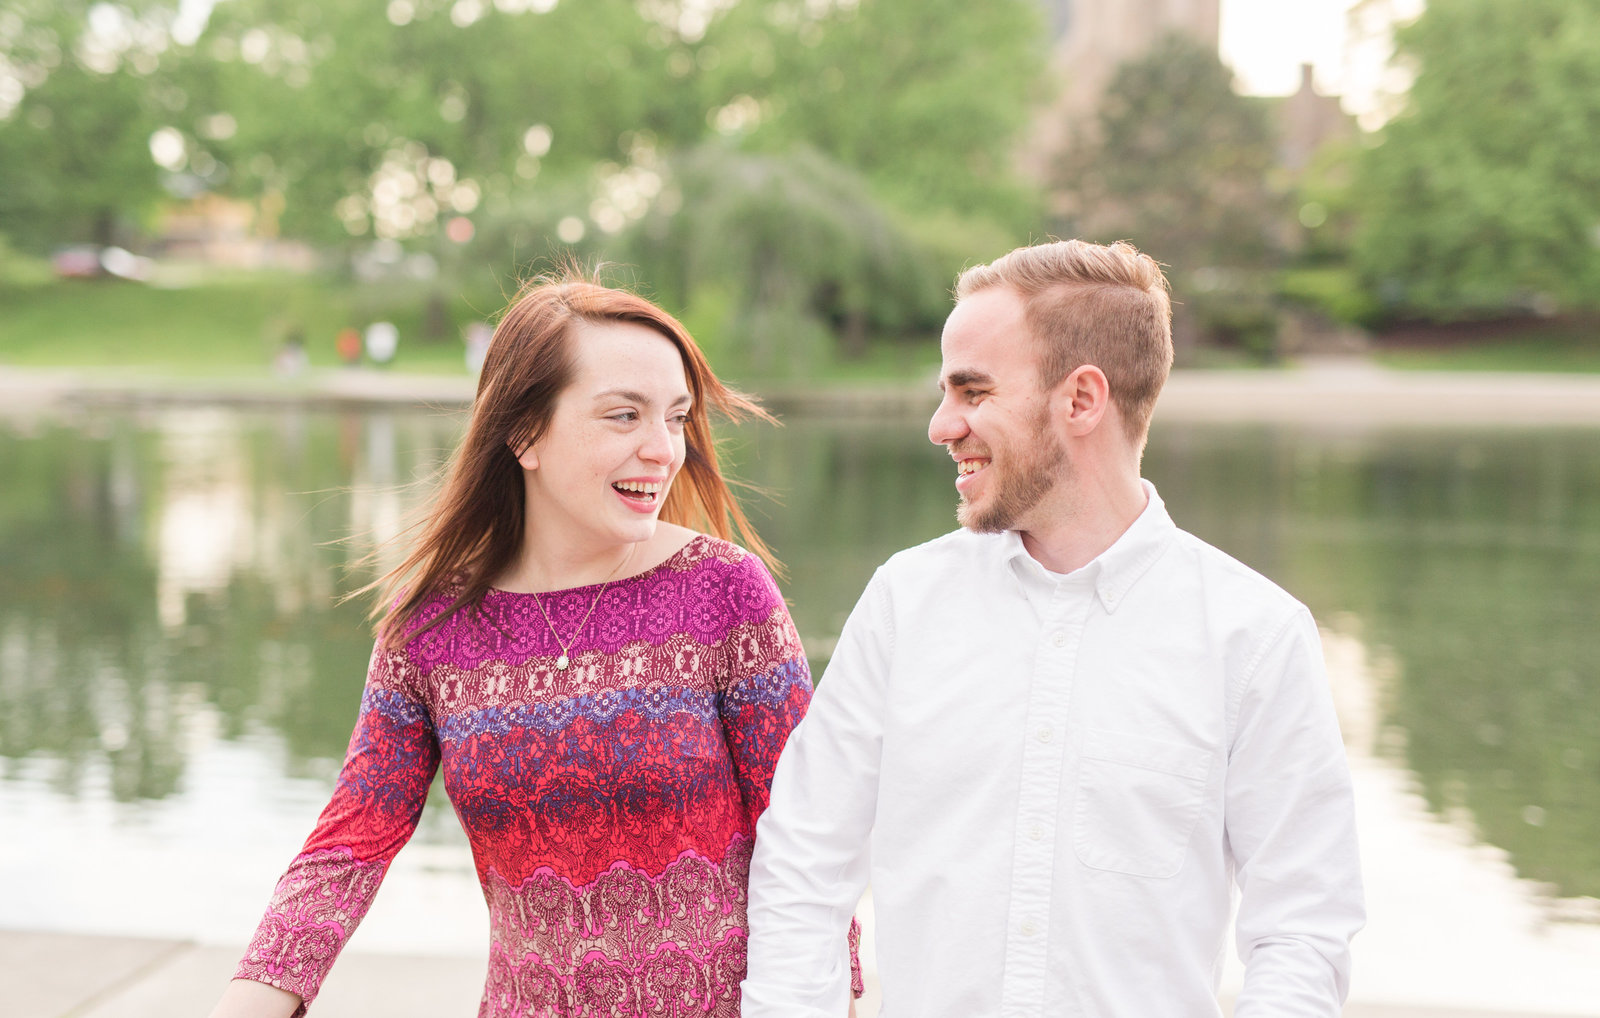 cleveland-art-museum-engagement-session-allison-ewing-photography-009-1